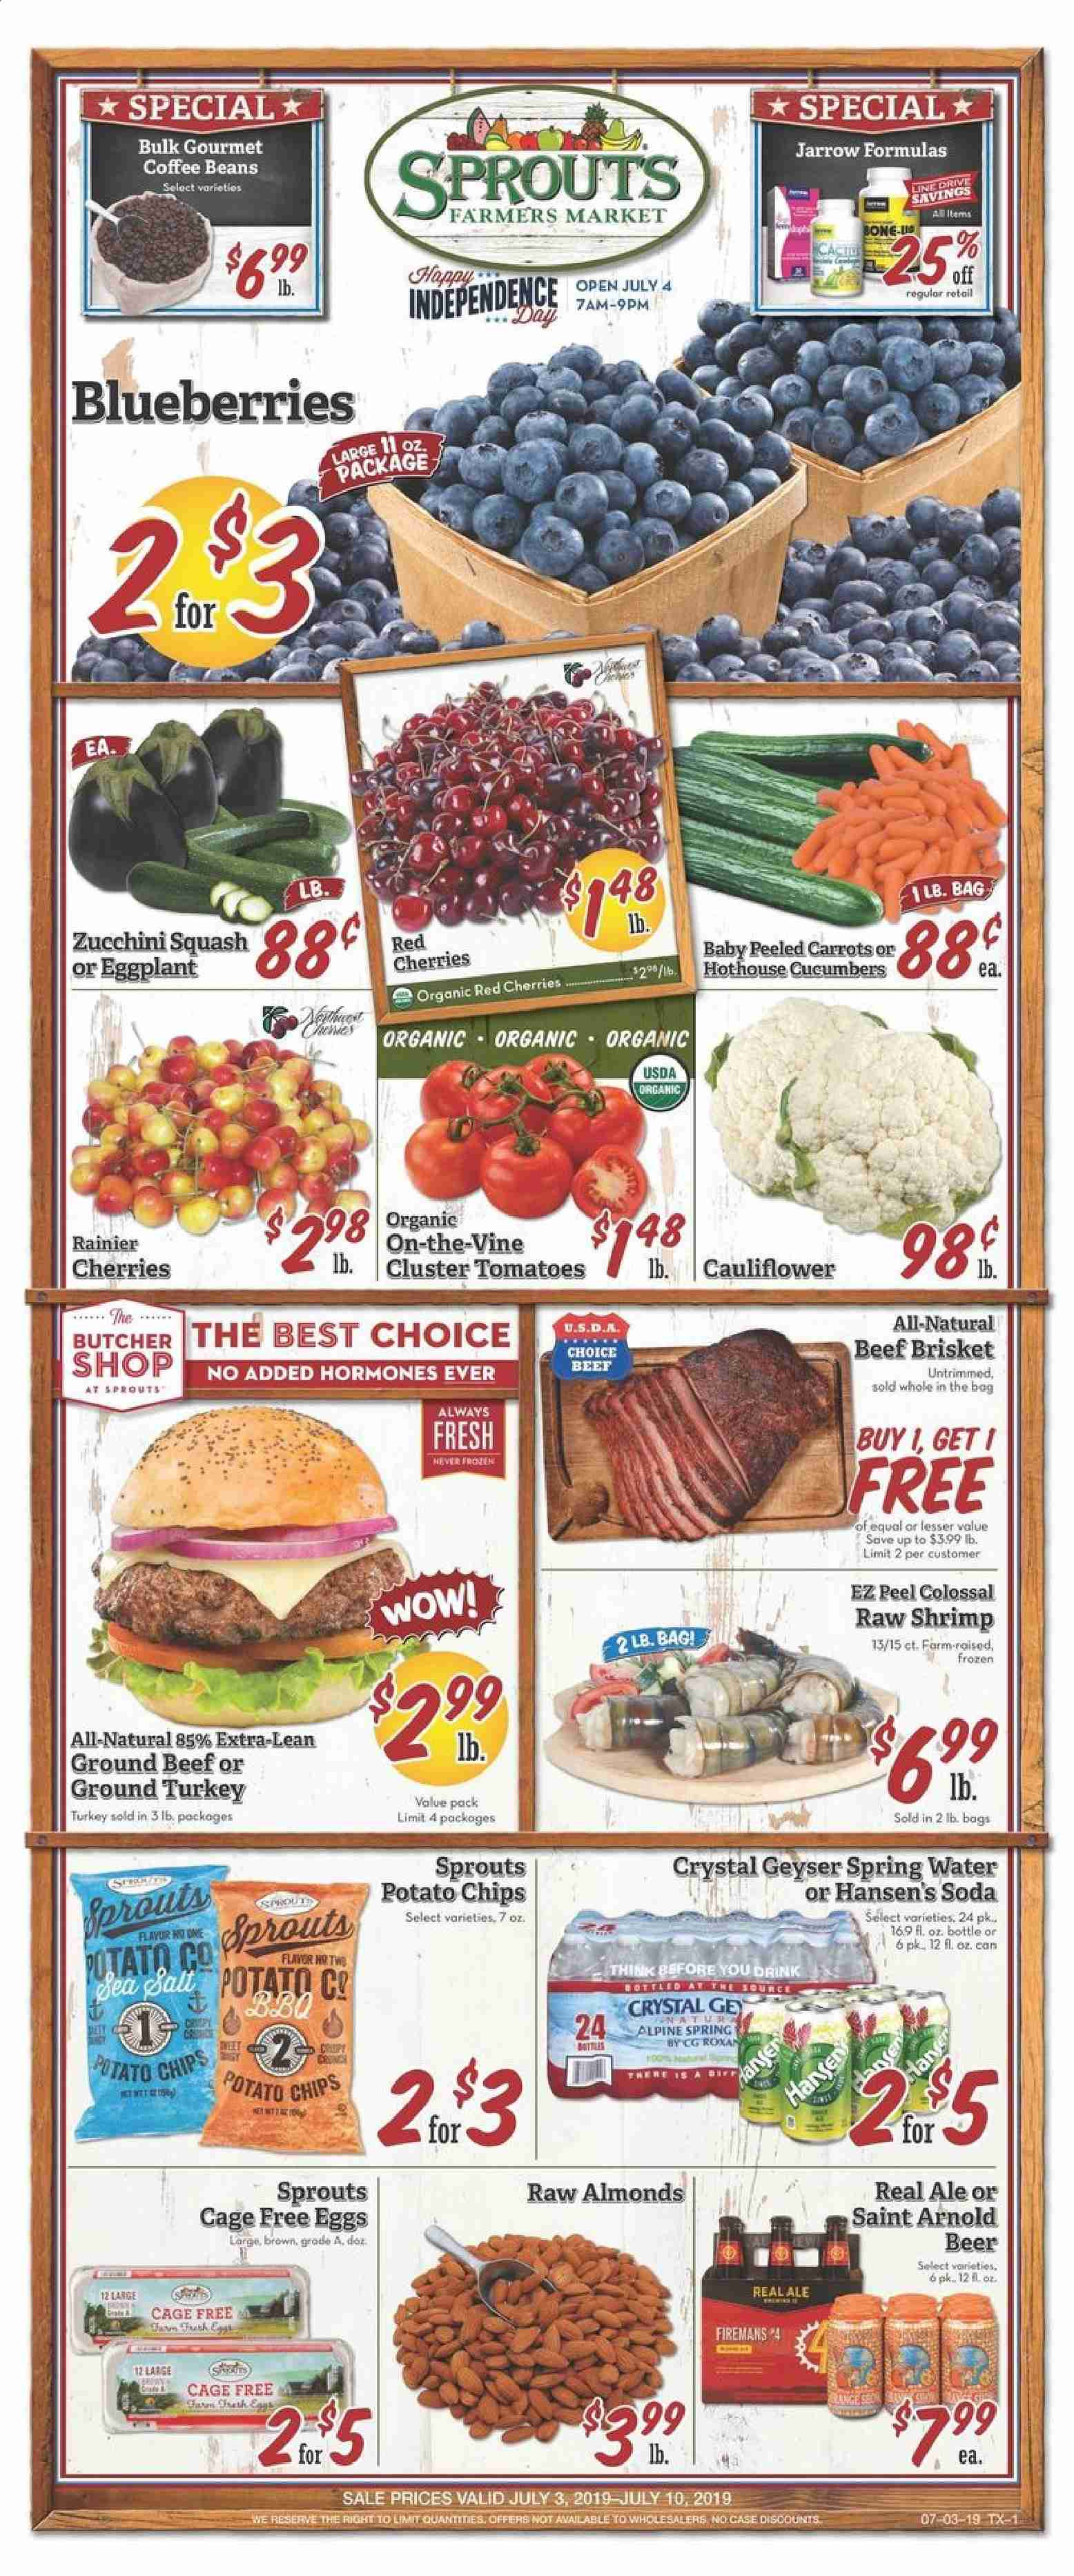 Sprouts Flyer  - 07.03.2019 - 07.10.2019. Page 1.